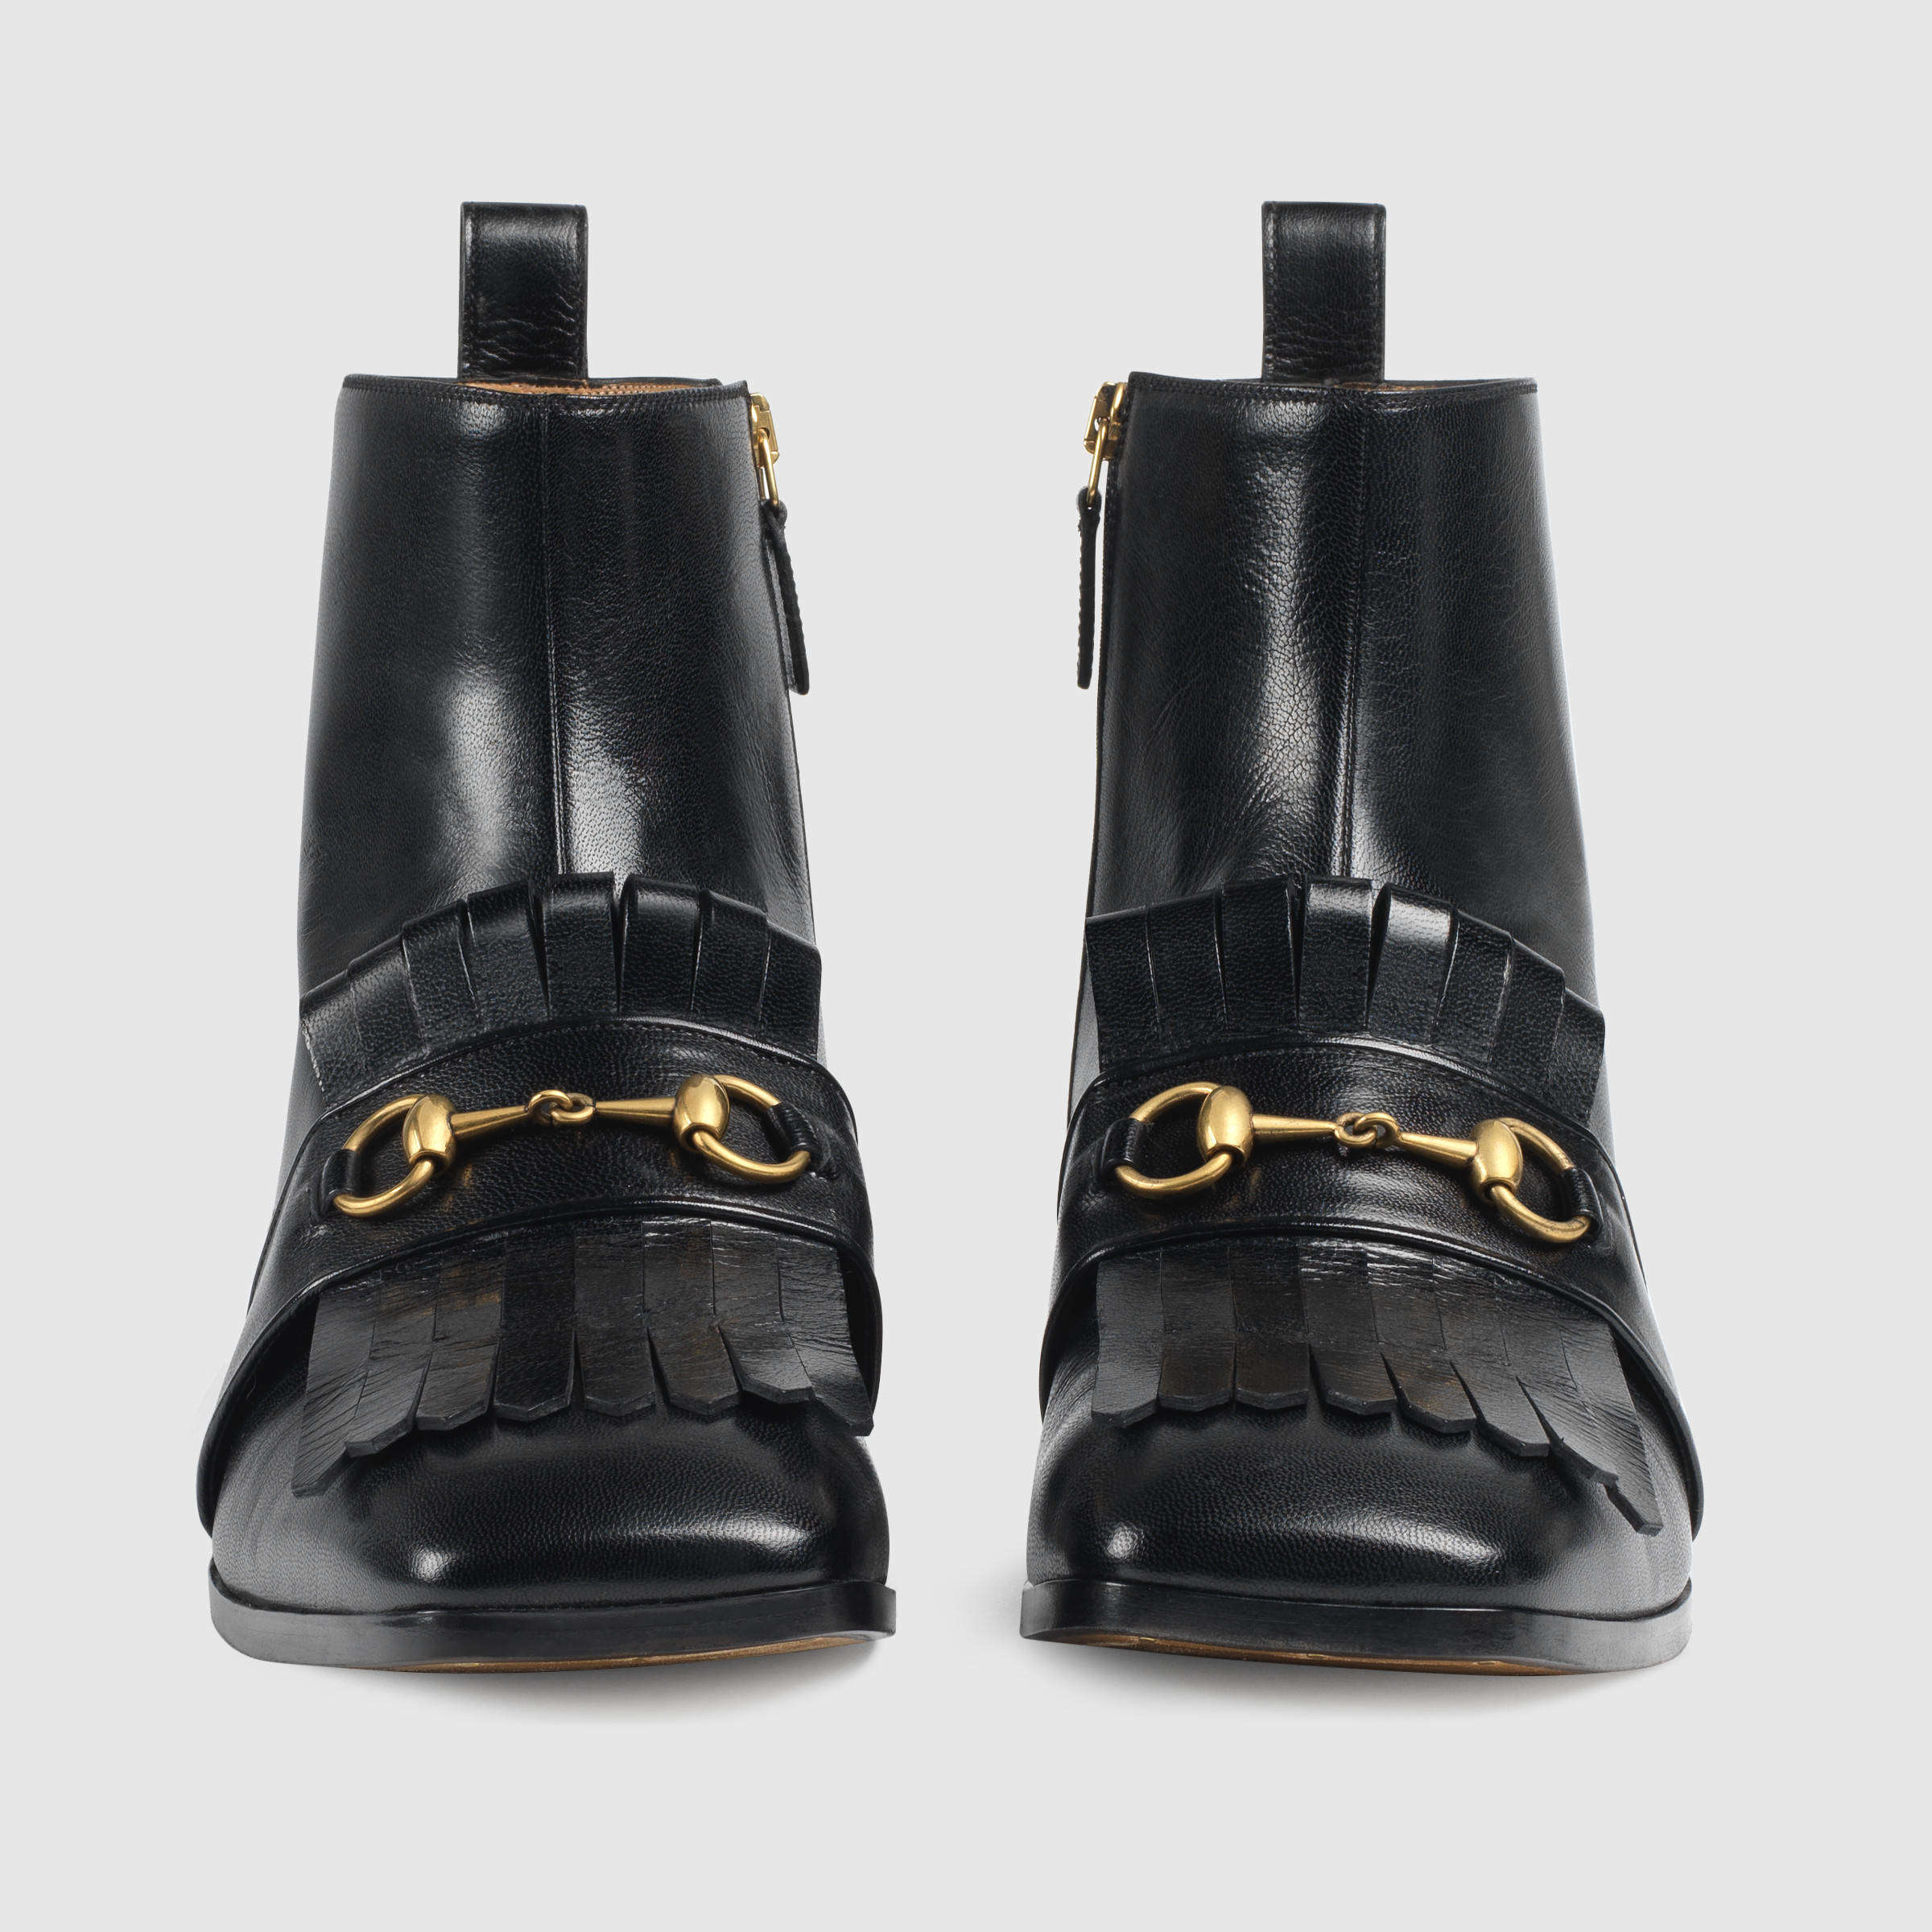 621440ae0 Gucci Gran Duca Leather Ankle Boots in Black for Men - Lyst